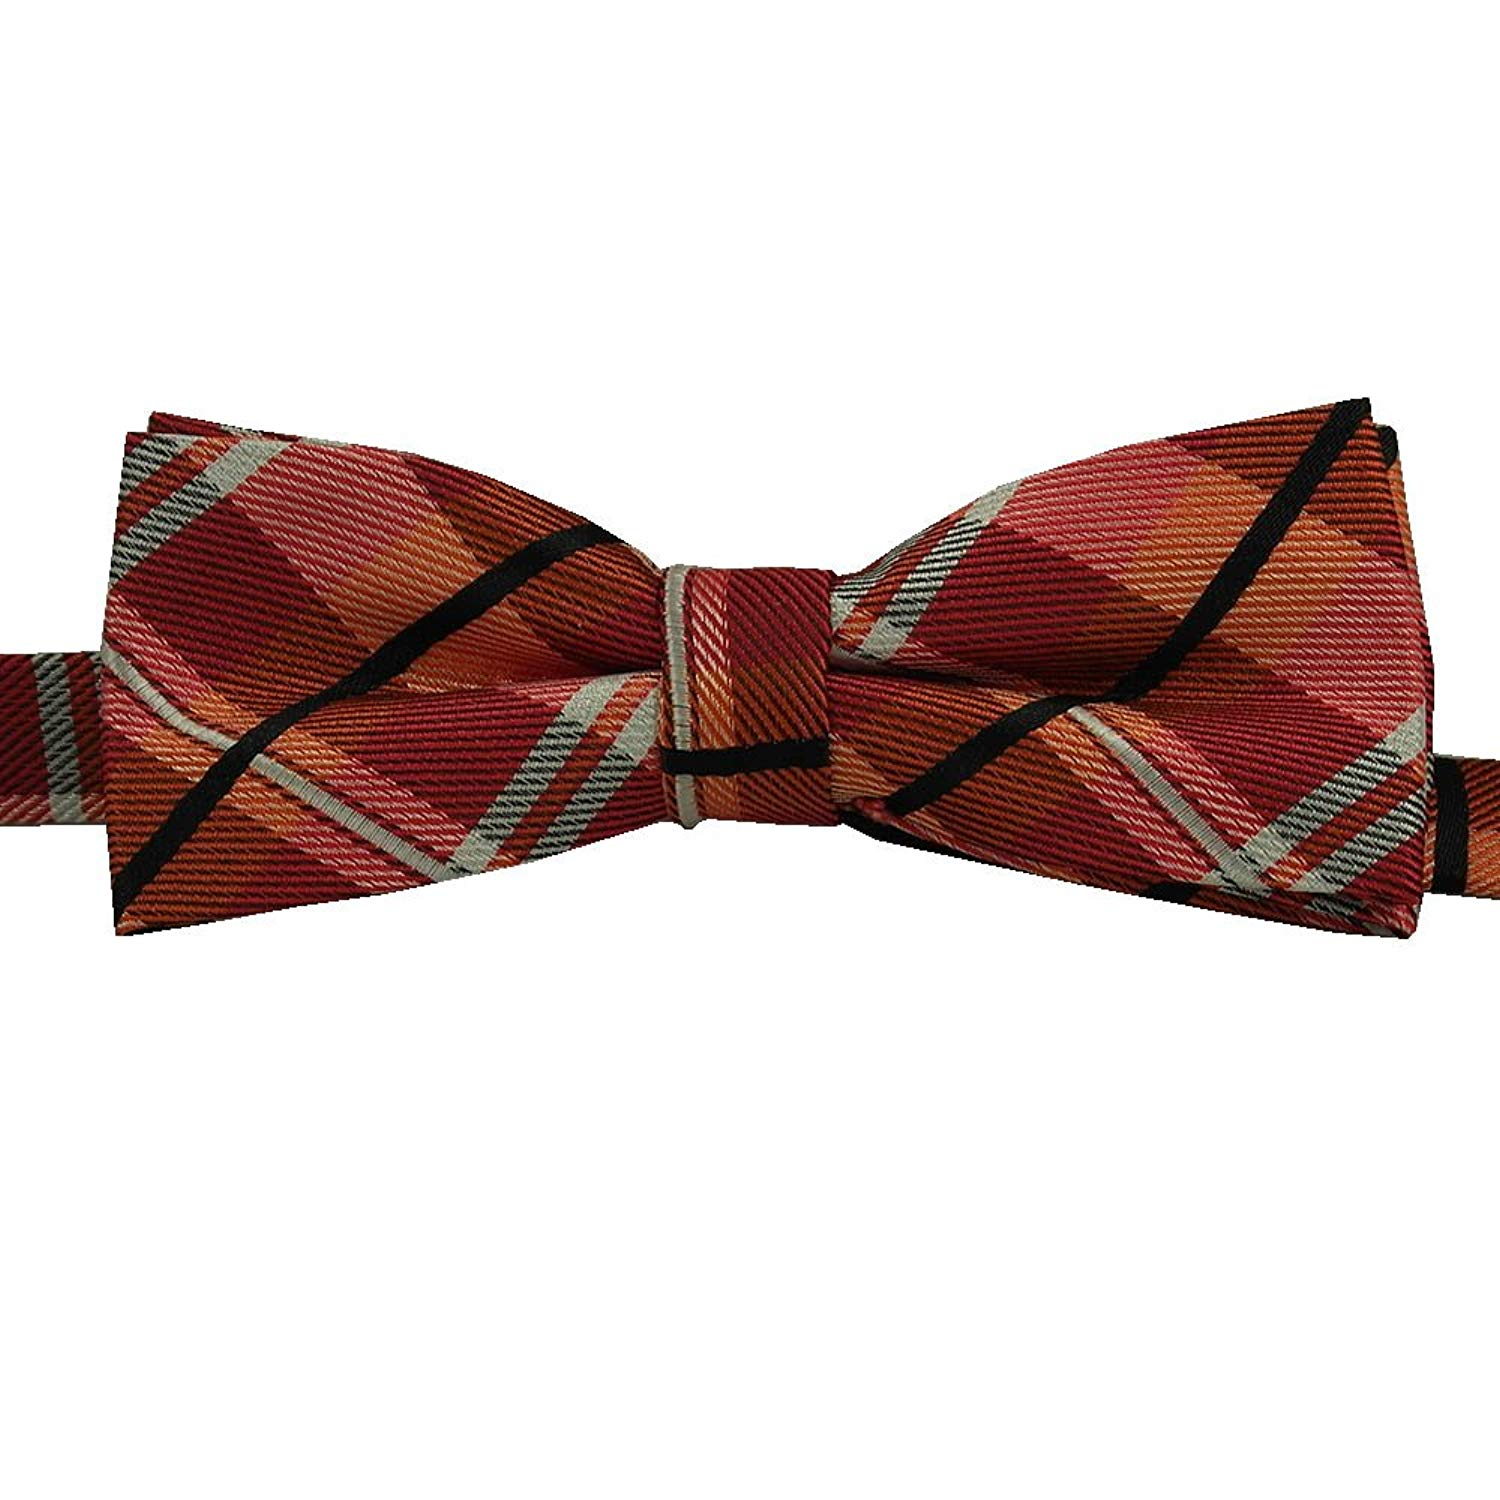 05aca30d4b6e Get Quotations · Children's Pretied Bow Tie (adjustable band fits children  ages 0-13 years old)